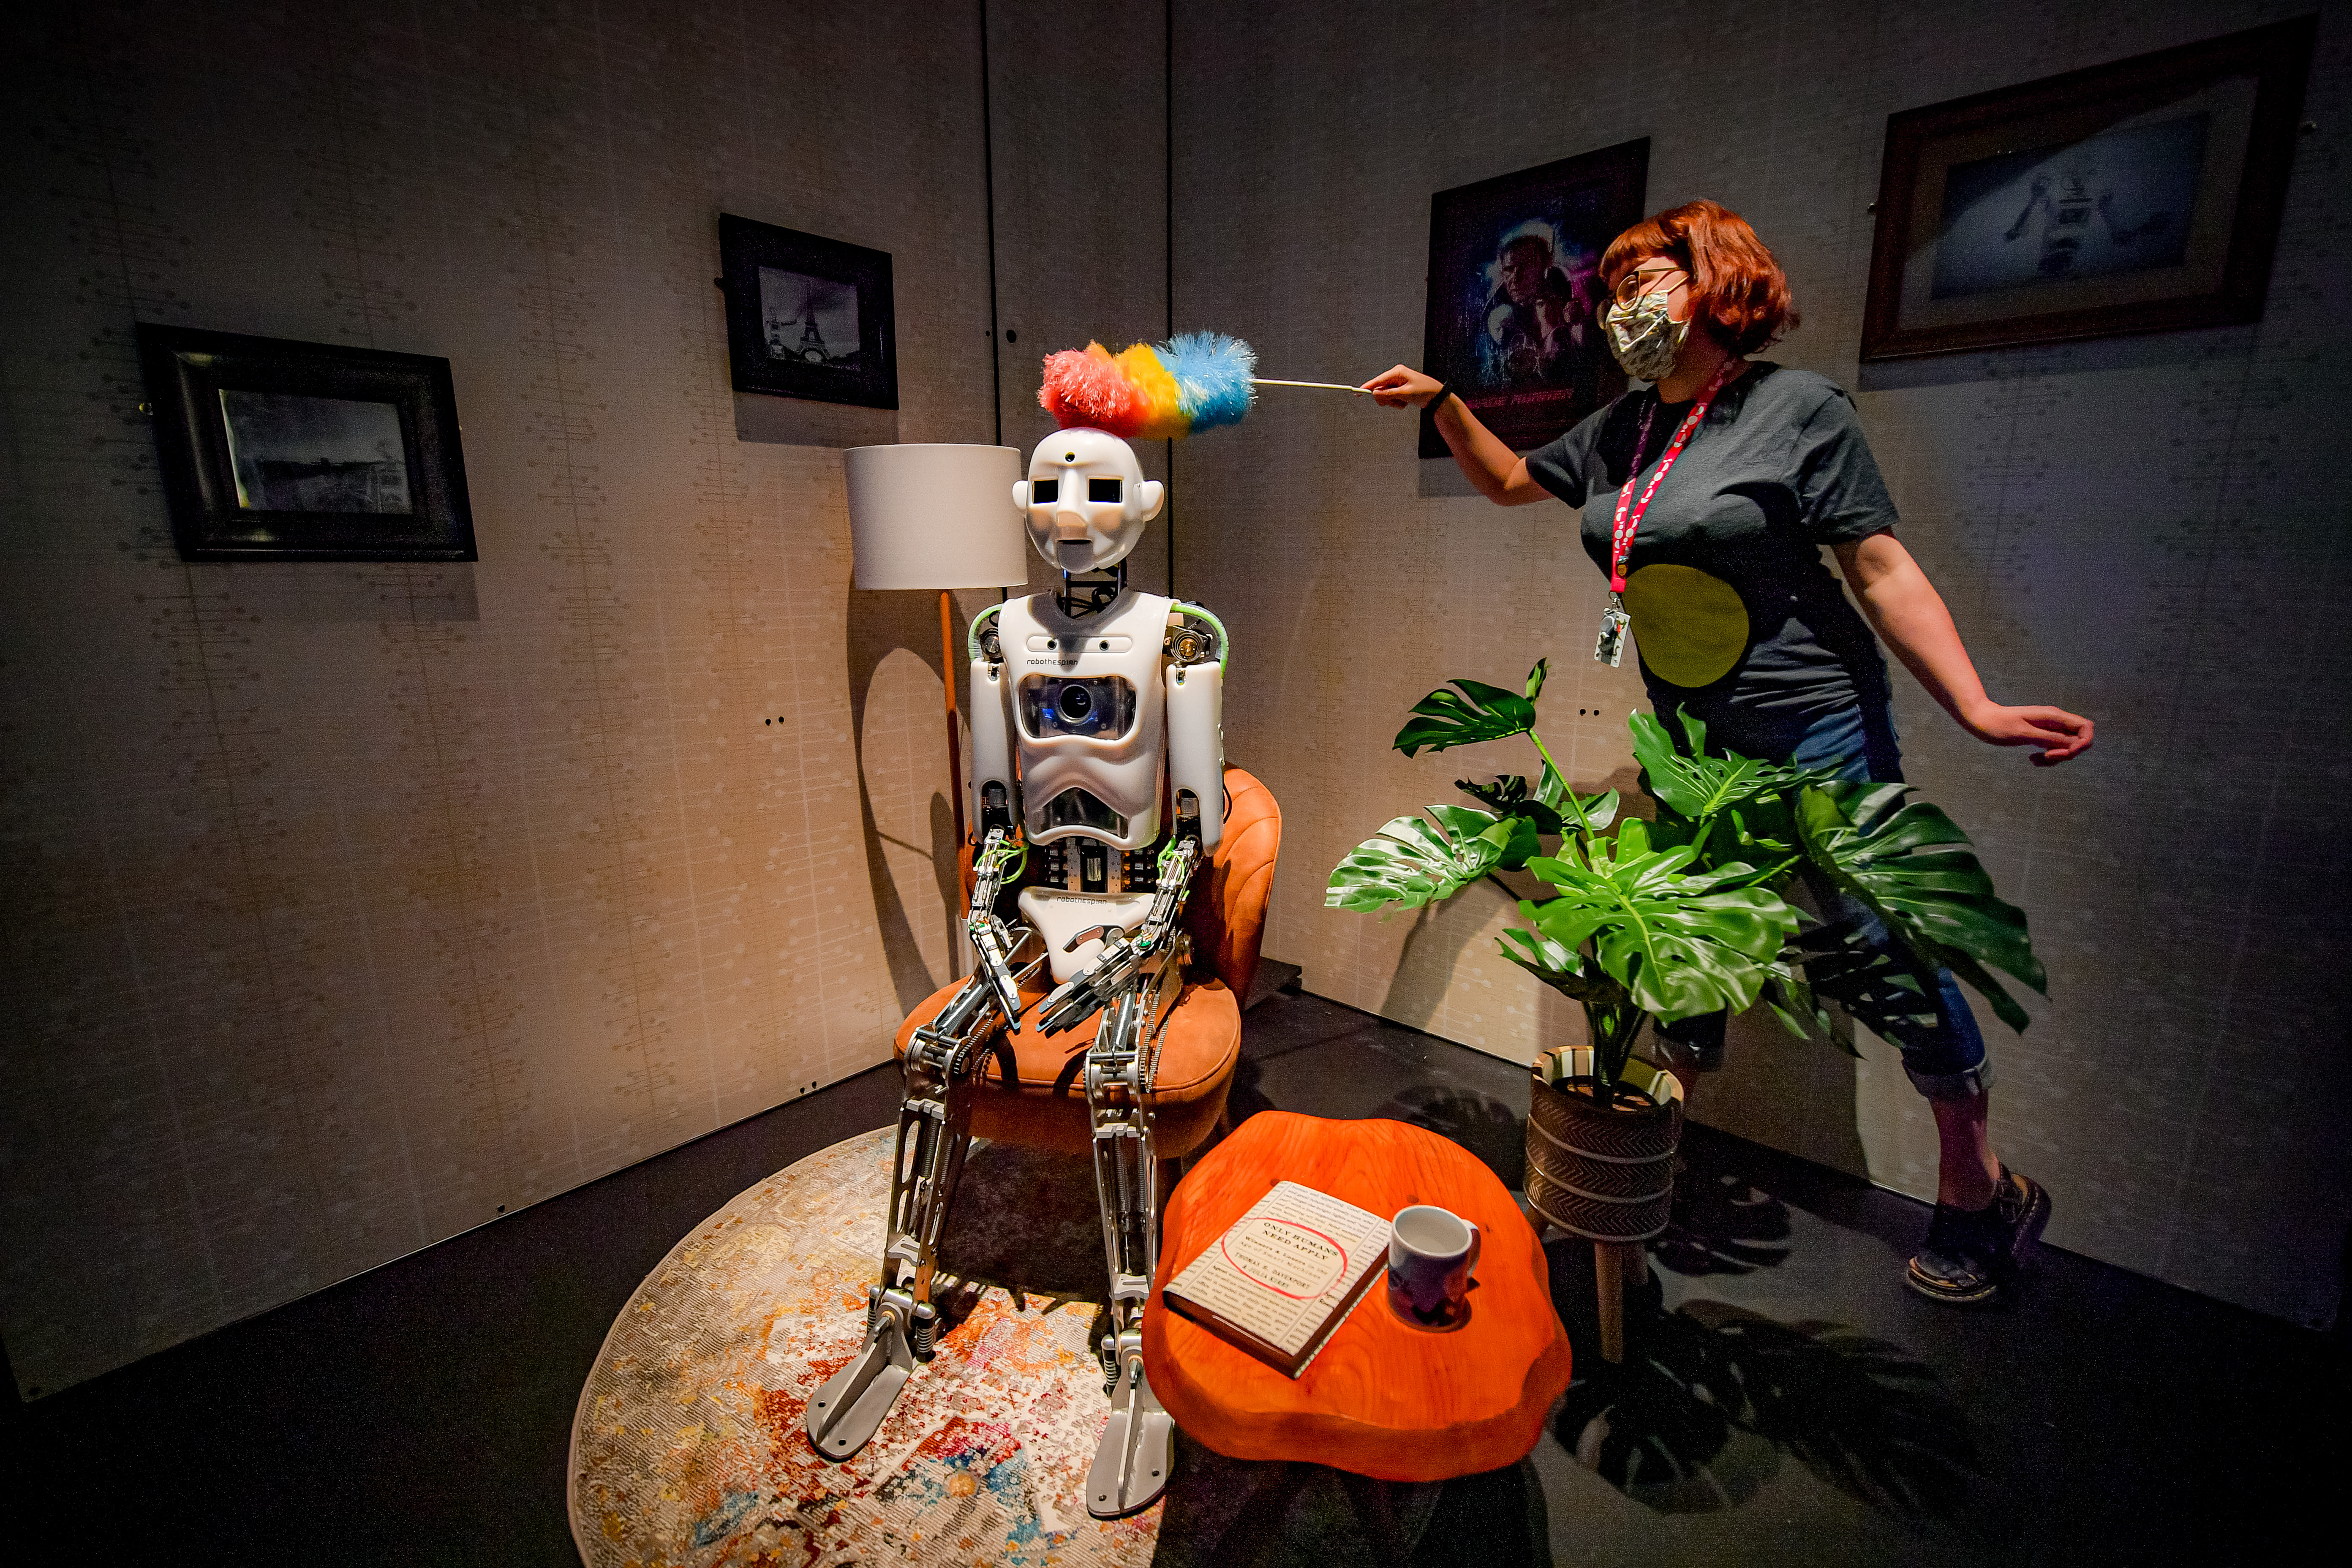 <p>Jade Hailes dusts an artificial intelligence robot called Robothespian at the science and creative venue, We The Curious, as staff and technicians clean and prepare the Bristol attraction ready for the public ahead of further easing of lockdown restrictions in England. Picture date: Monday May 10, 2021.</p>